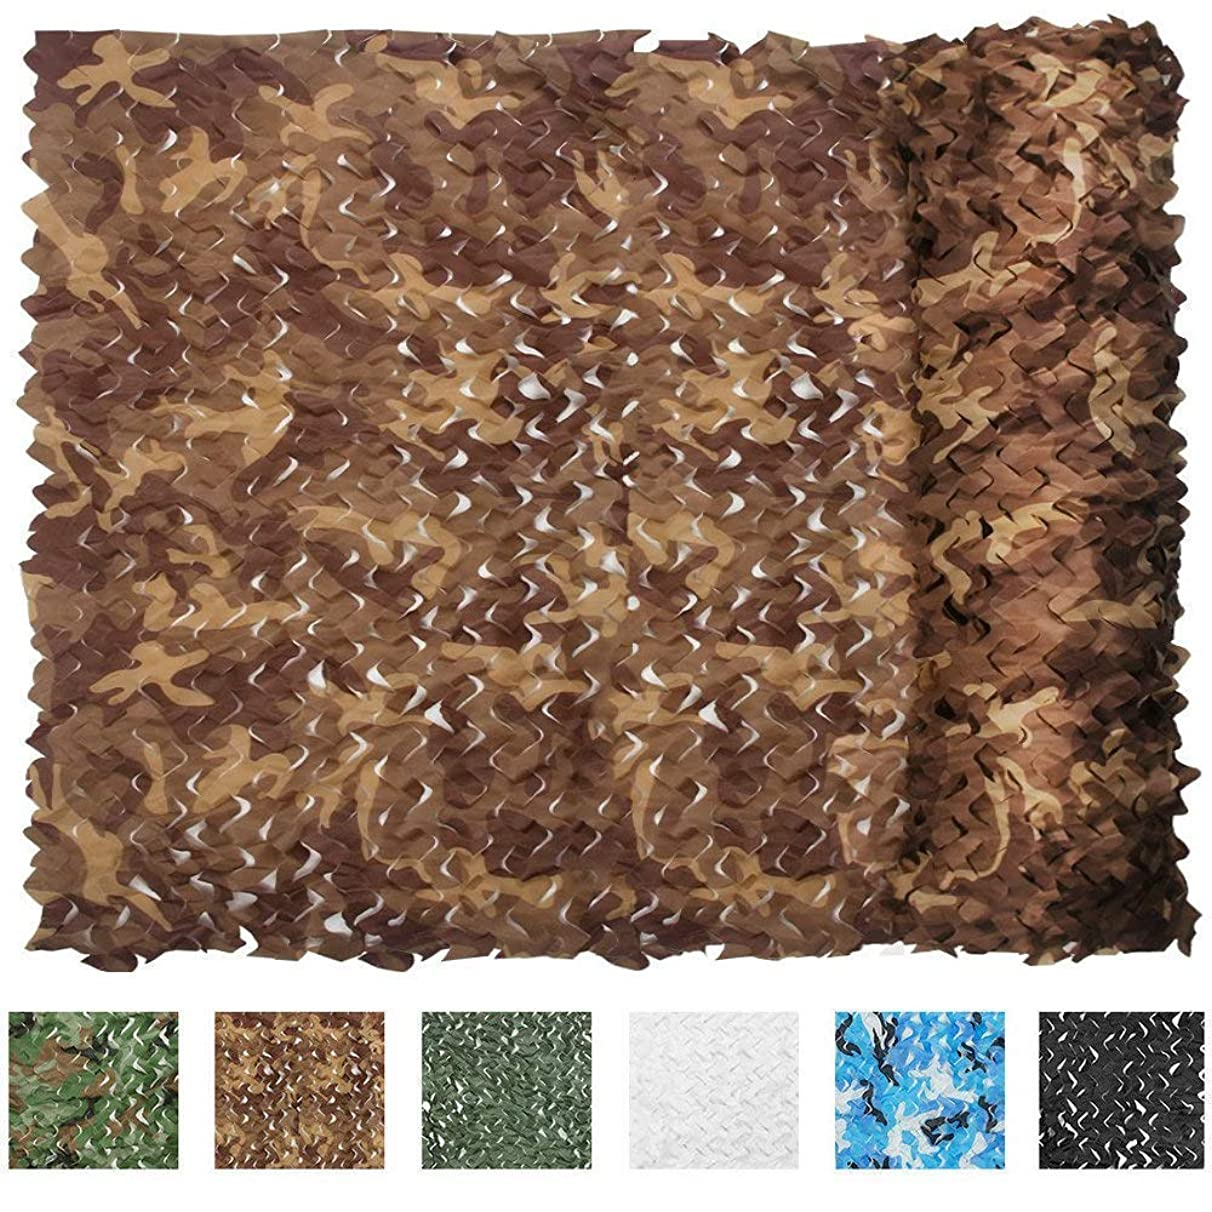 LNM Camouflage Net Desert Woodland Jungle 210D Camo Netting Durable Waterproof for CS Camping Military Hunting Shooting Sun Shade Blind Watching Hide Party Decorations